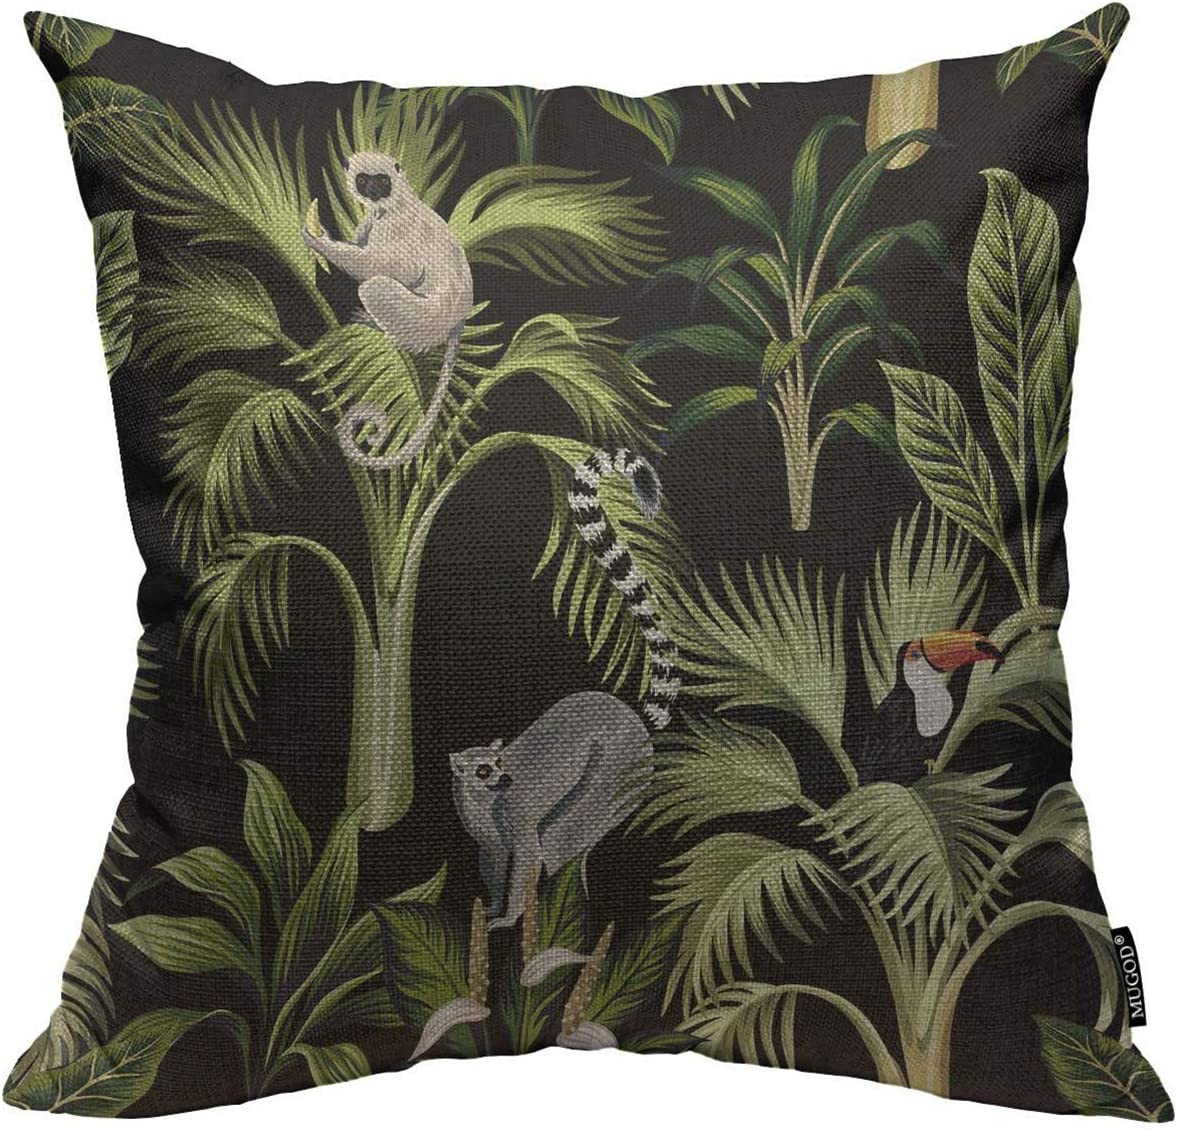 Mugod Floral Throw Pillow Cover Tropical Plants Palm Trees Lemur Sloth  Toucan and Bird Decorative Square Pillow Case for Home Bedroom Living Room  ...